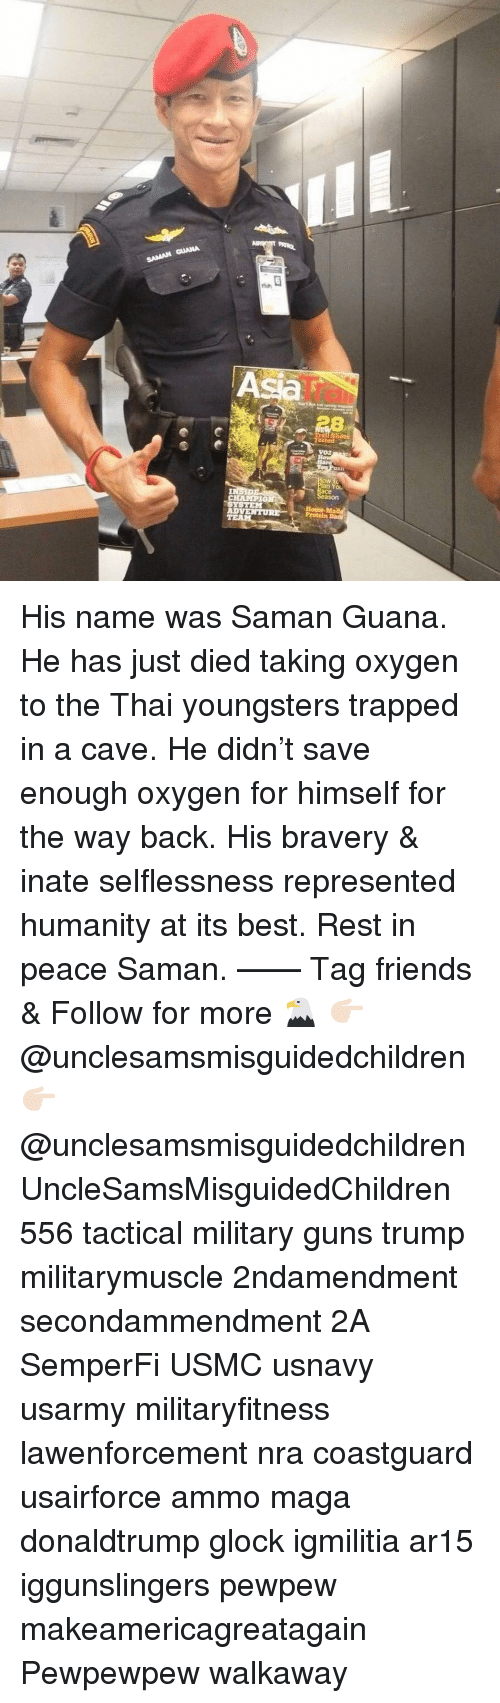 selflessness: An  IT  VOZ  n You  ace  ason  CHAMPIO  AD His name was Saman Guana. He has just died taking oxygen to the Thai youngsters trapped in a cave. He didn't save enough oxygen for himself for the way back. His bravery & inate selflessness represented humanity at its best. Rest in peace Saman. —— Tag friends & Follow for more 🦅 👉🏻 @unclesamsmisguidedchildren 👉🏻 @unclesamsmisguidedchildren UncleSamsMisguidedChildren 556 tactical military guns trump militarymuscle 2ndamendment secondammendment 2A SemperFi USMC usnavy usarmy militaryfitness lawenforcement nra coastguard usairforce ammo maga donaldtrump glock igmilitia ar15 iggunslingers pewpew makeamericagreatagain Pewpewpew walkaway